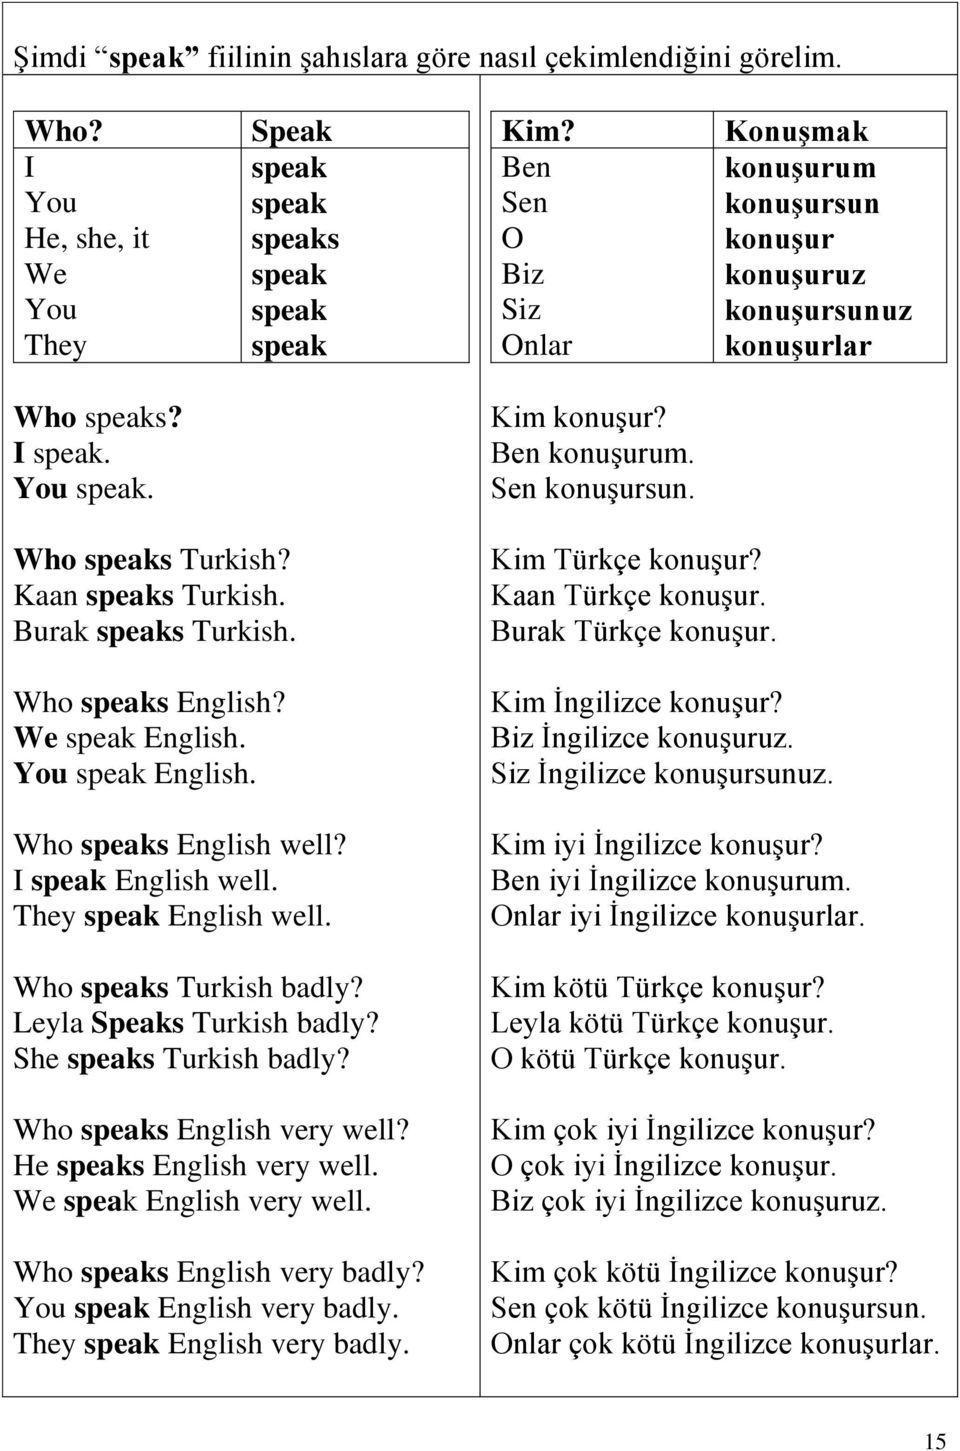 Kaan speaks Turkish. Burak speaks Turkish. Who speaks English? We speak English. speak English. Who speaks English well? I speak English well. They speak English well. Who speaks Turkish badly?